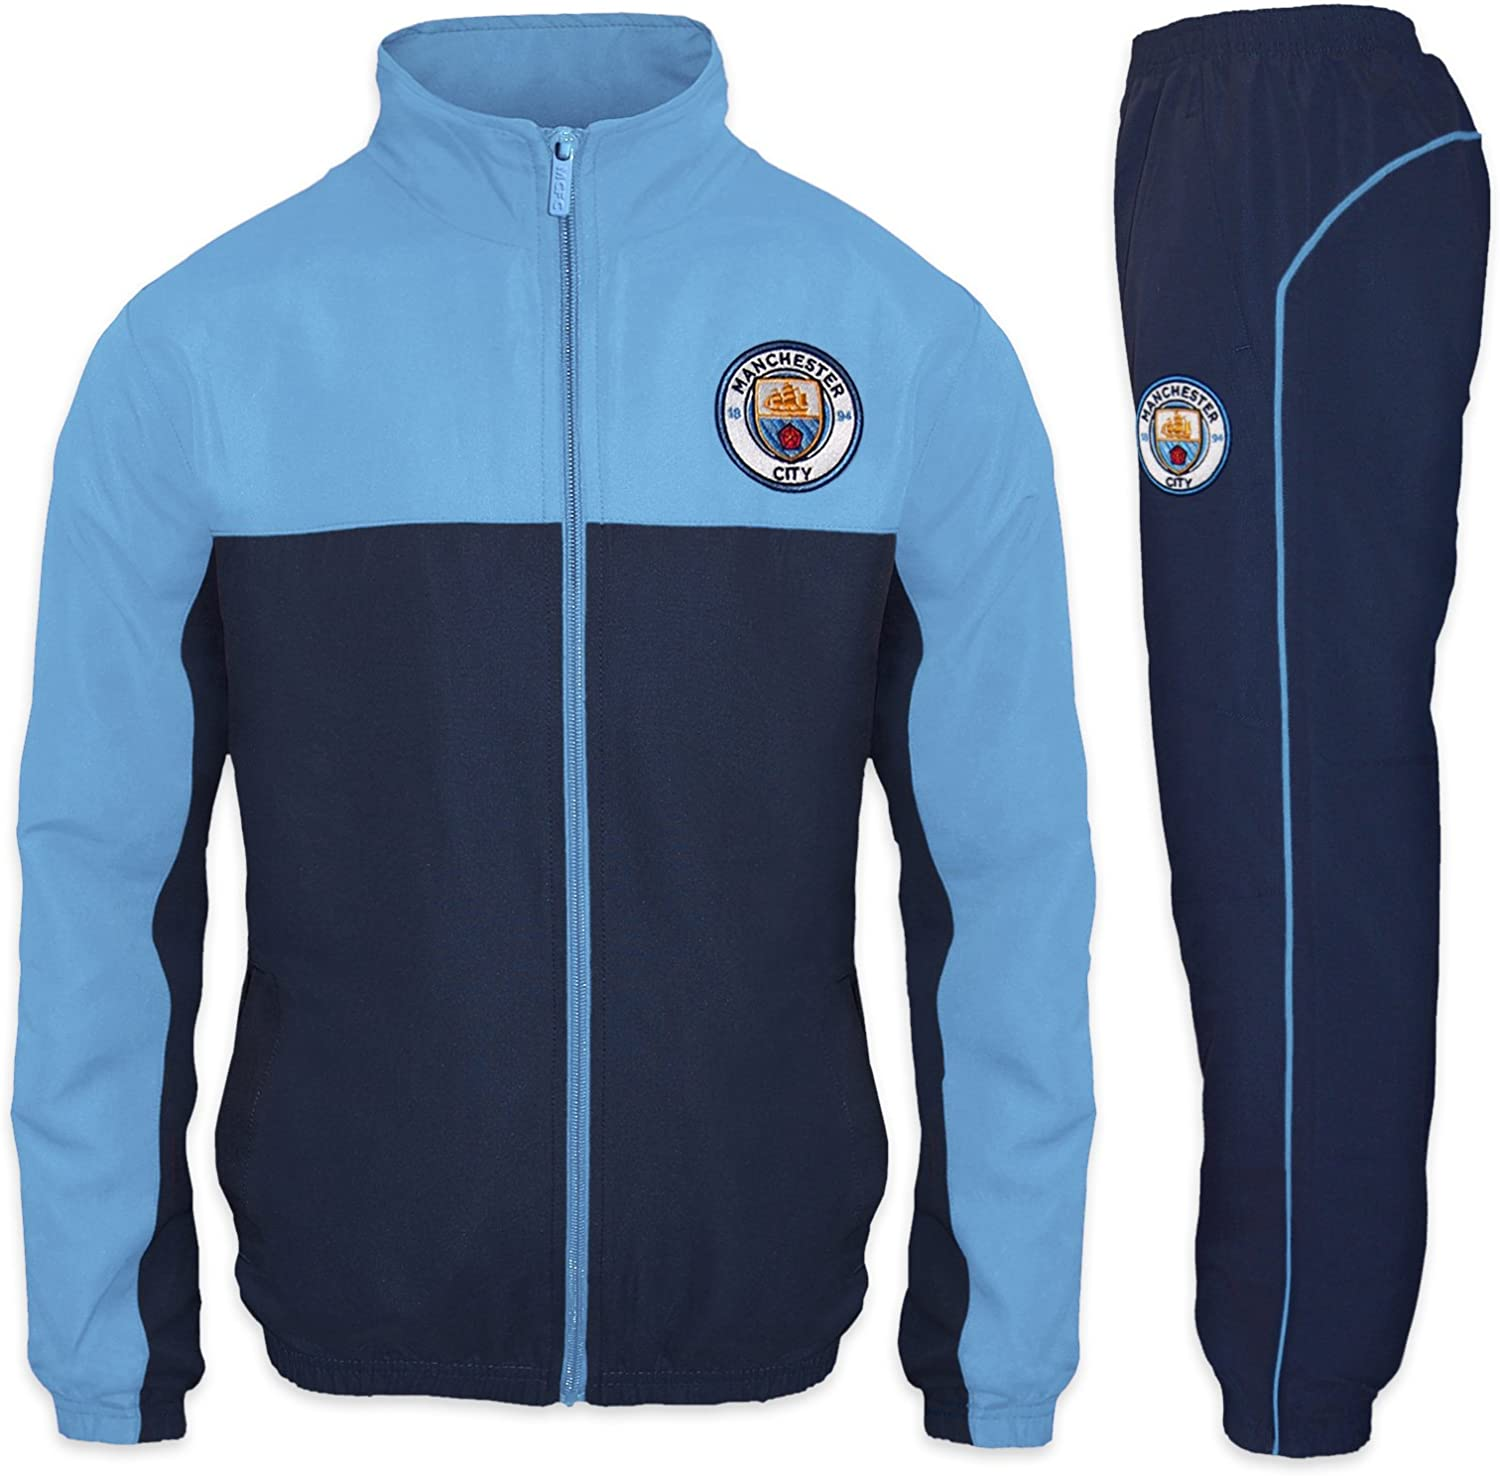 Manchester City FC officiel Lot veste et pantalon de